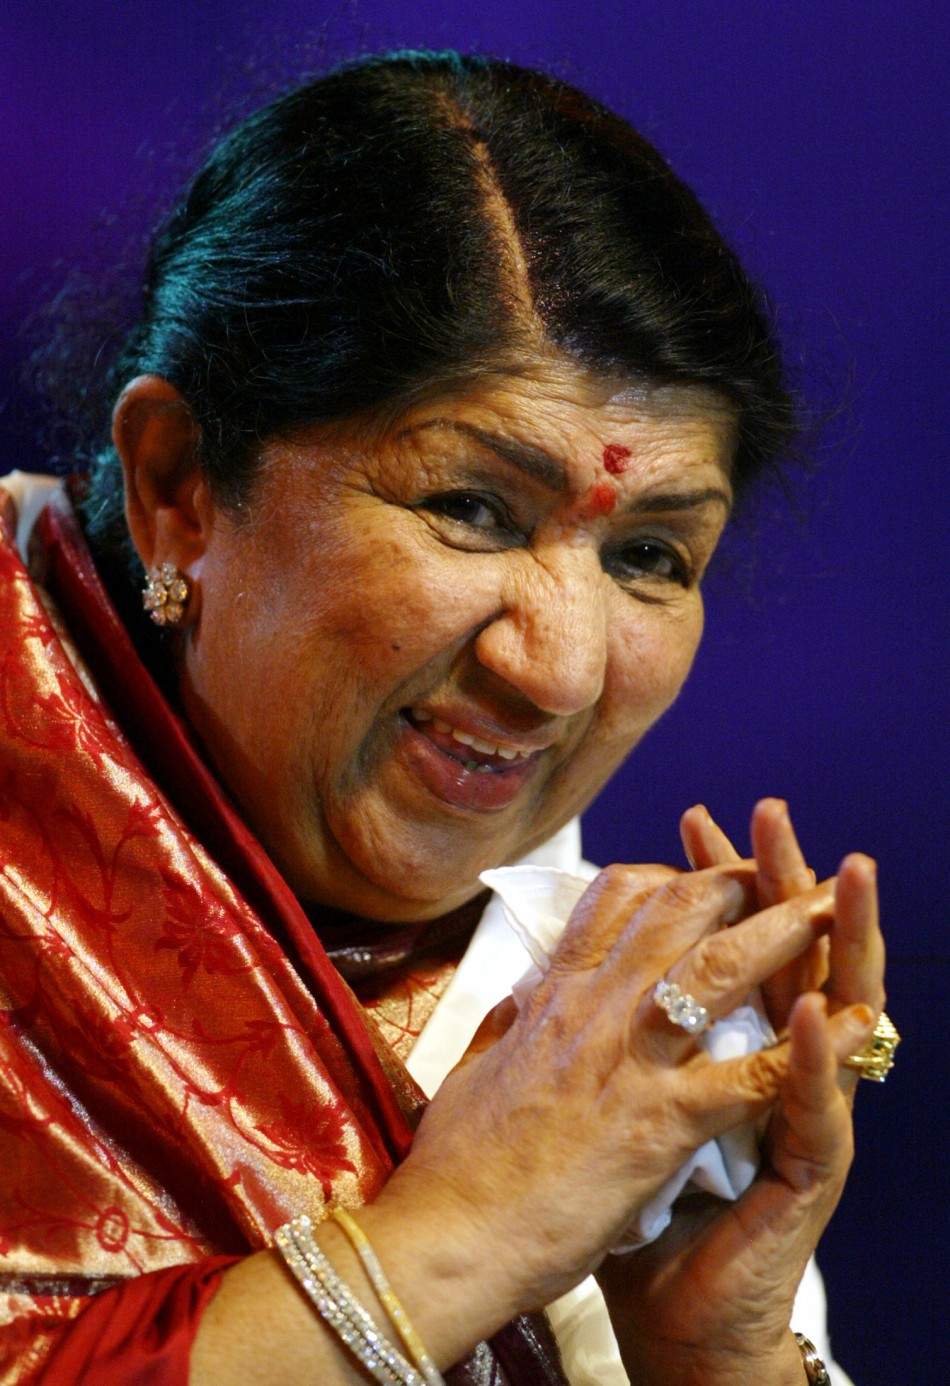 Lata Mangeskar to Receive First 'Hridaynath Award' as She Turns 82